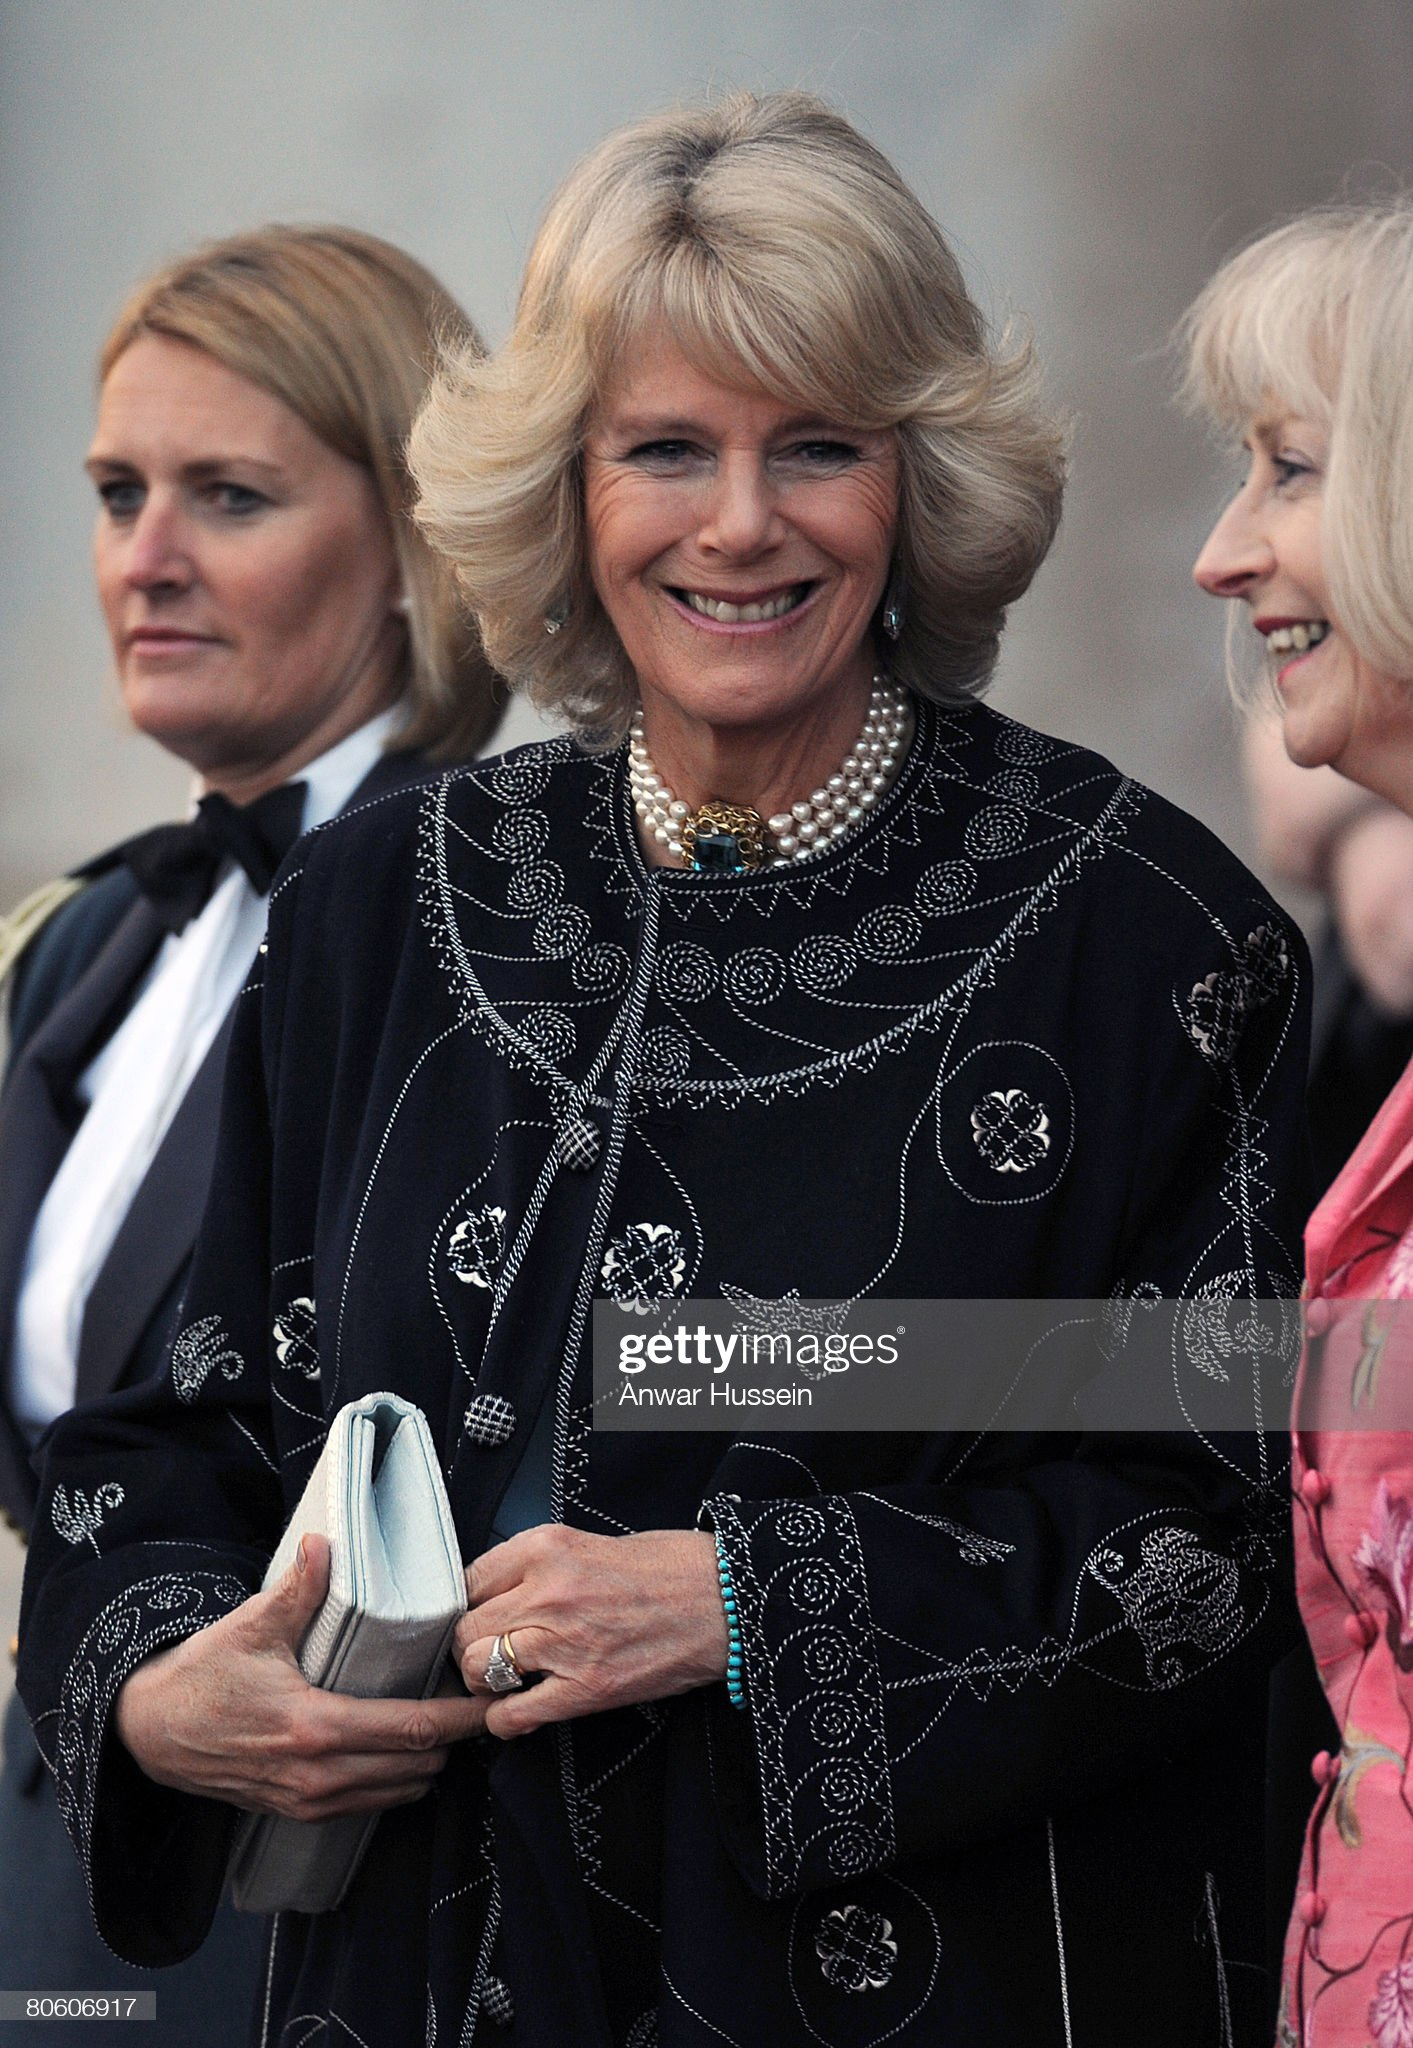 Prince of Wales, Duchess of Cornwall, Prince William Attend RAF Cranwe : News Photo